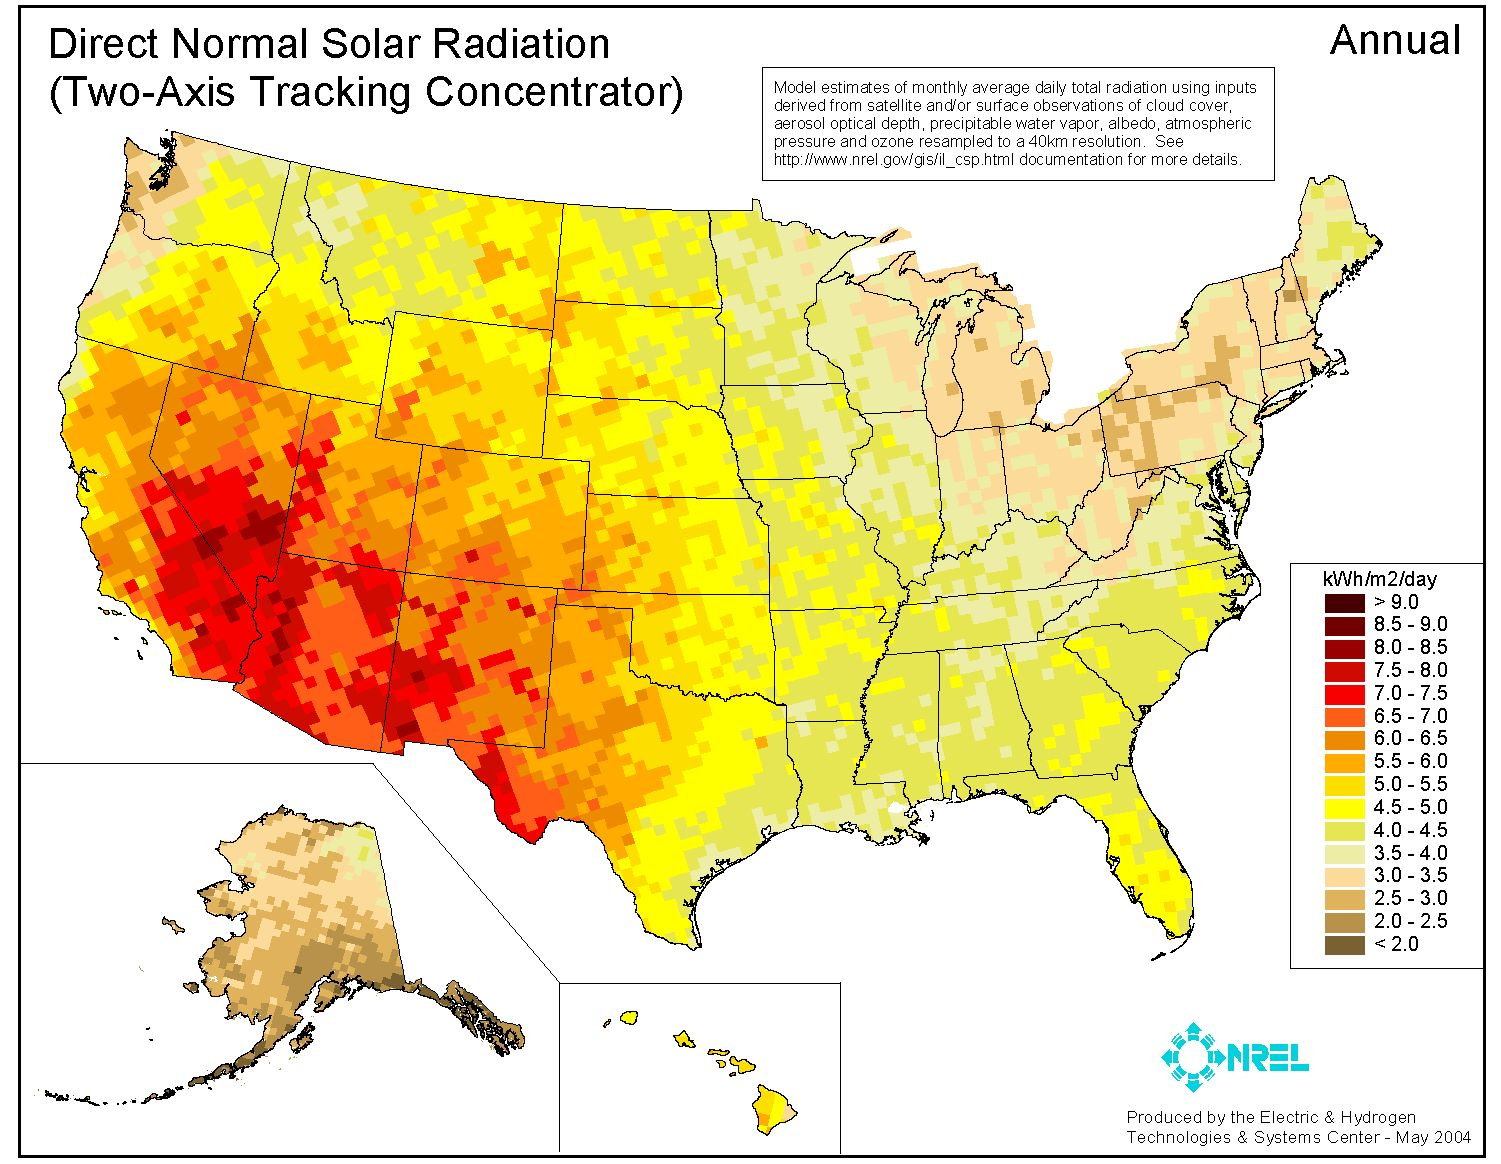 File:Direct normal solar radiation 2004.jpg - Wikipedia, the free ...